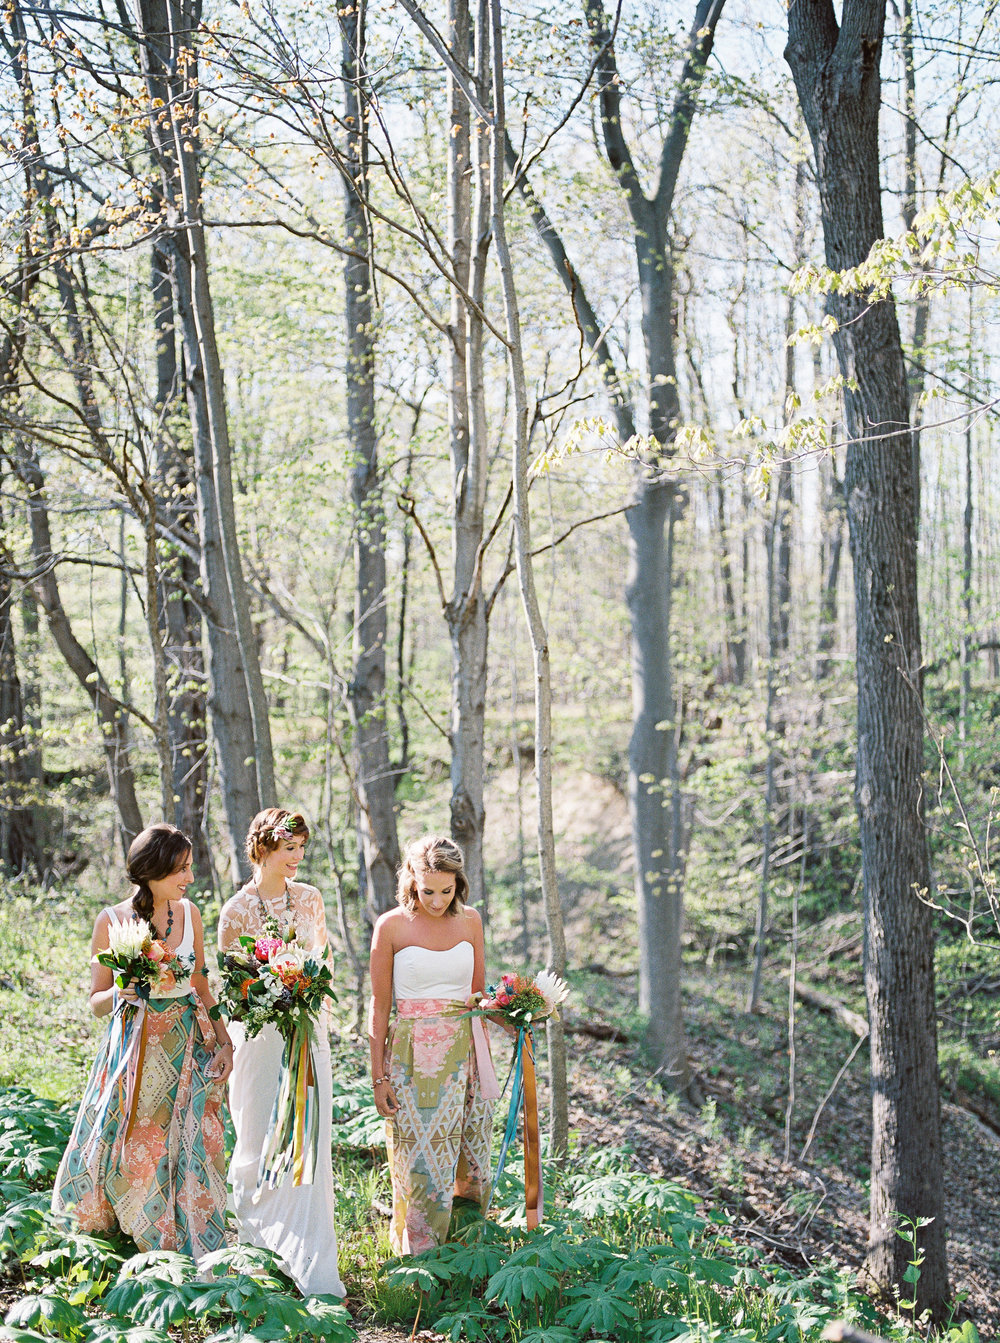 Alexandra-Elise-Photography-Ali-Reed-Film-Wedding-Photographer-Ithaca-New-York-Firelight-Camps-041.jpg